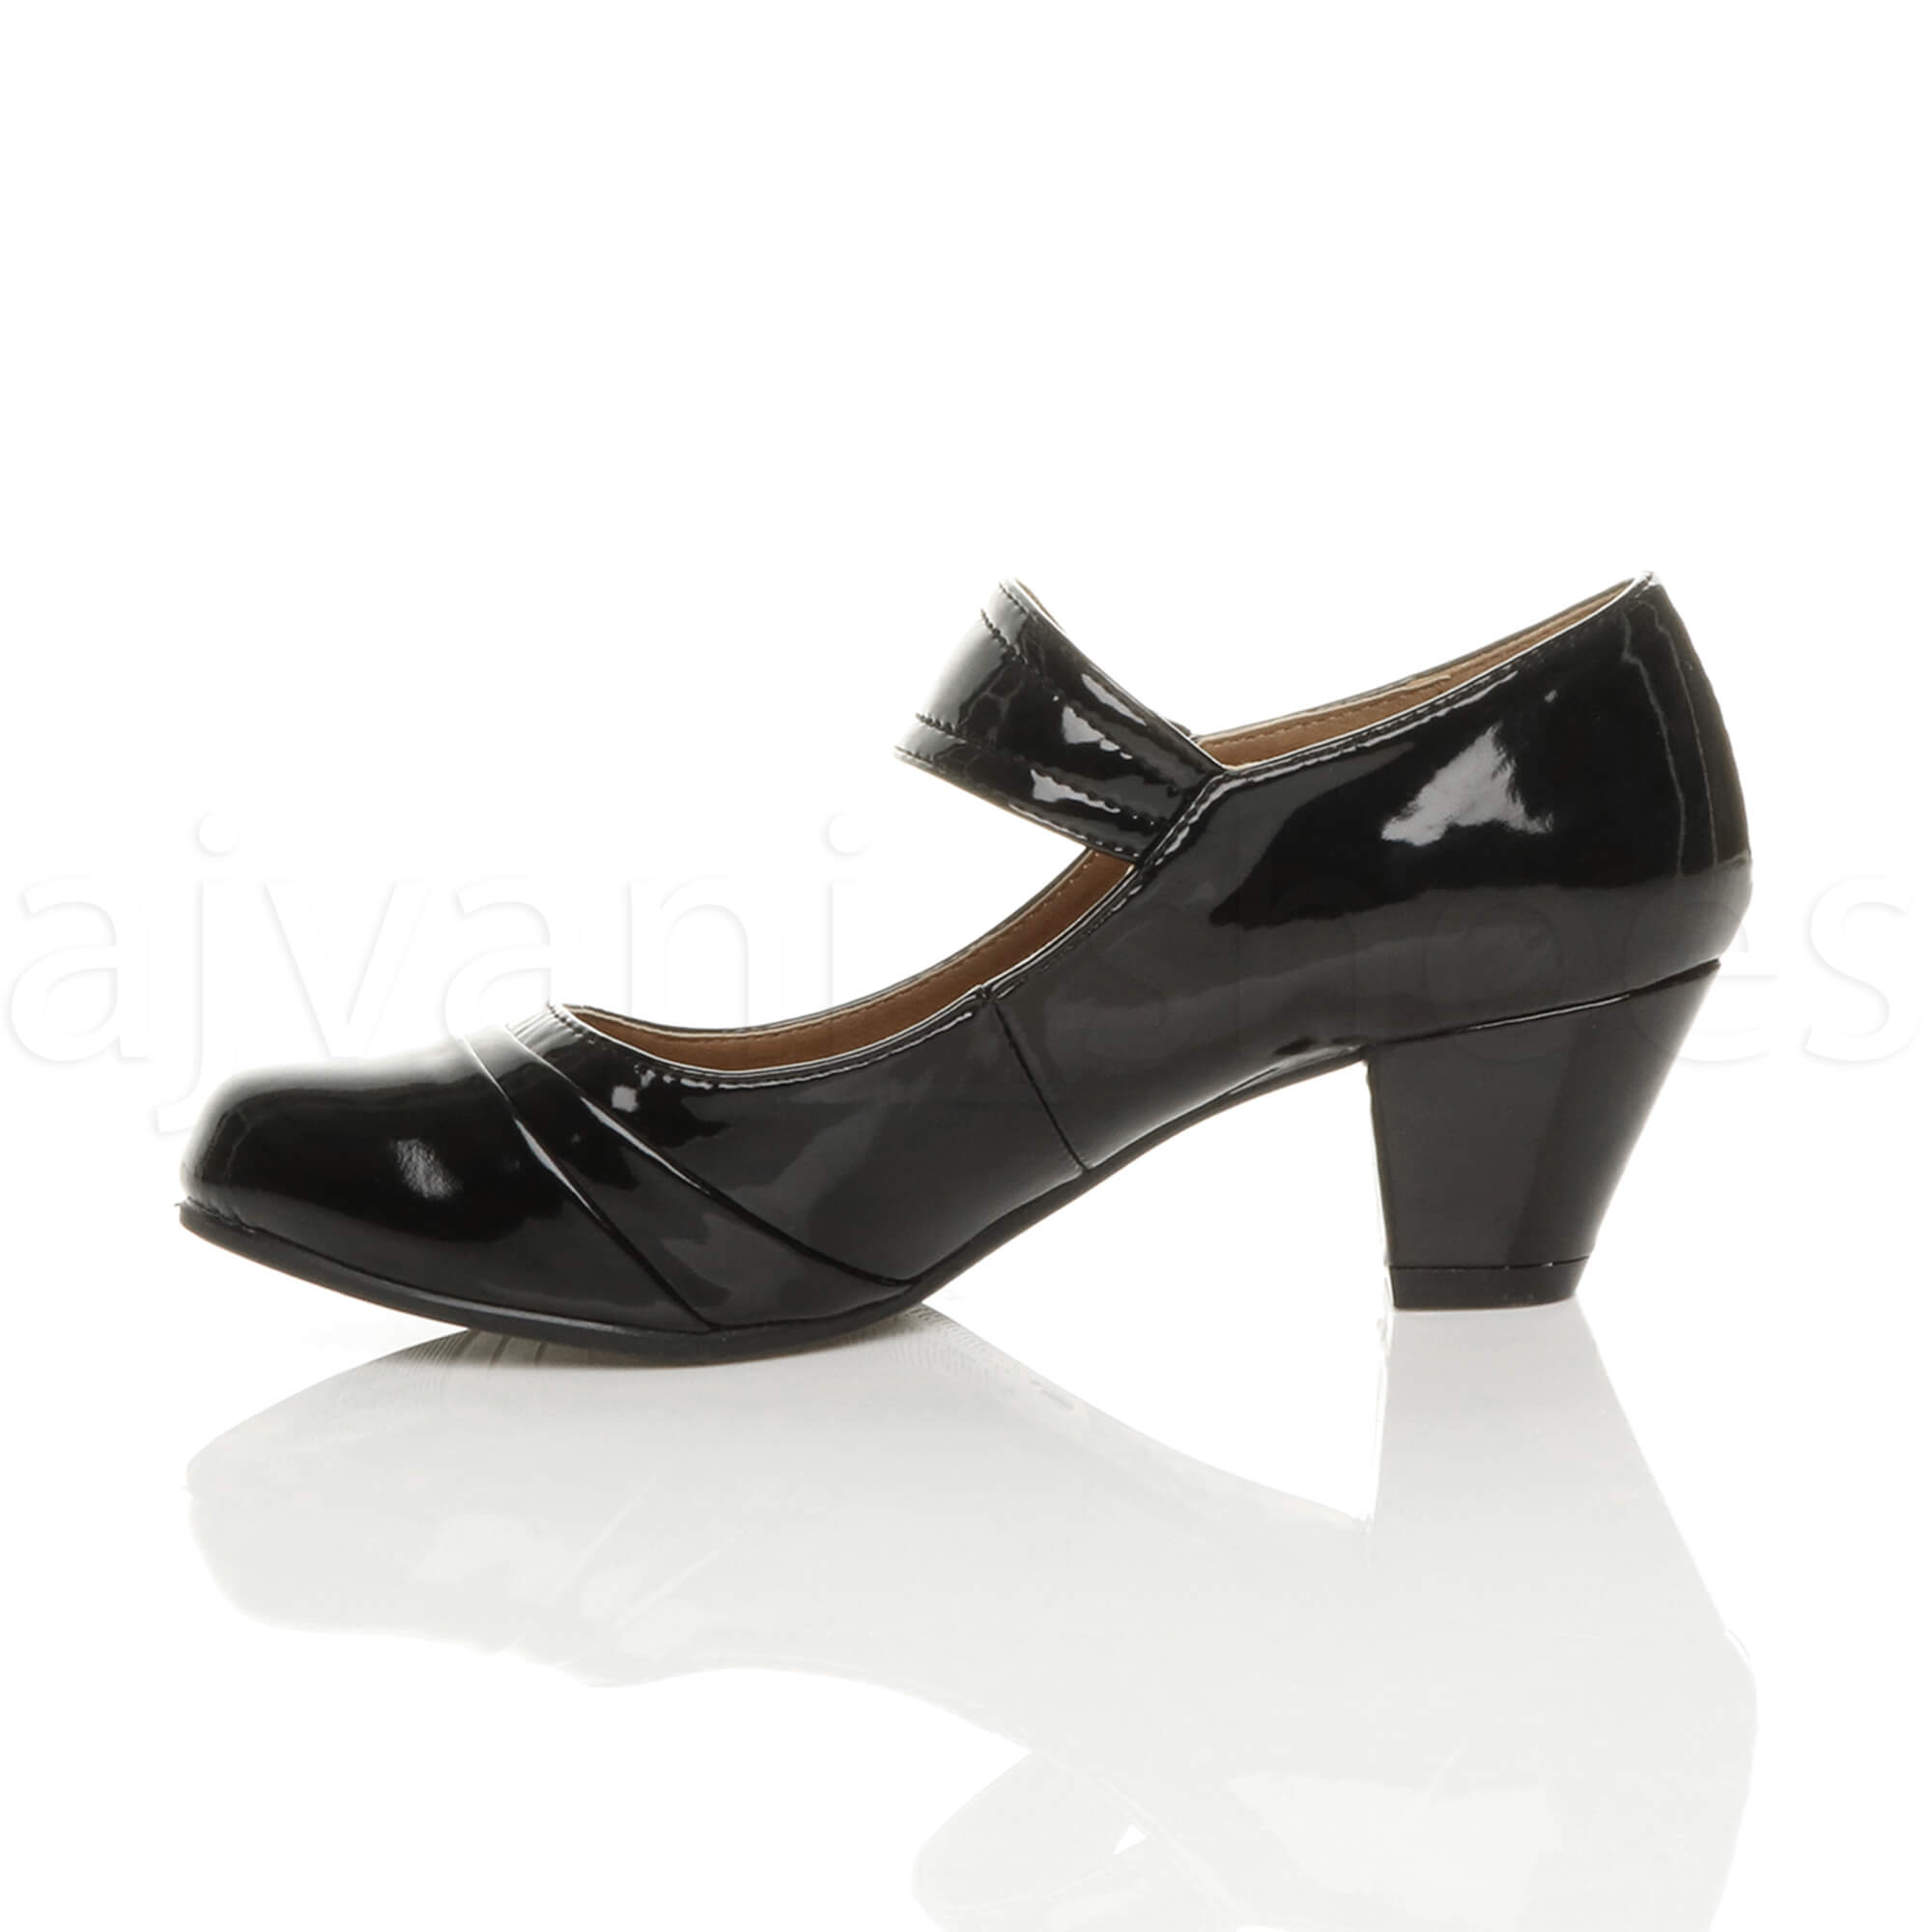 Black Mary Jane Comfort Court Shoes